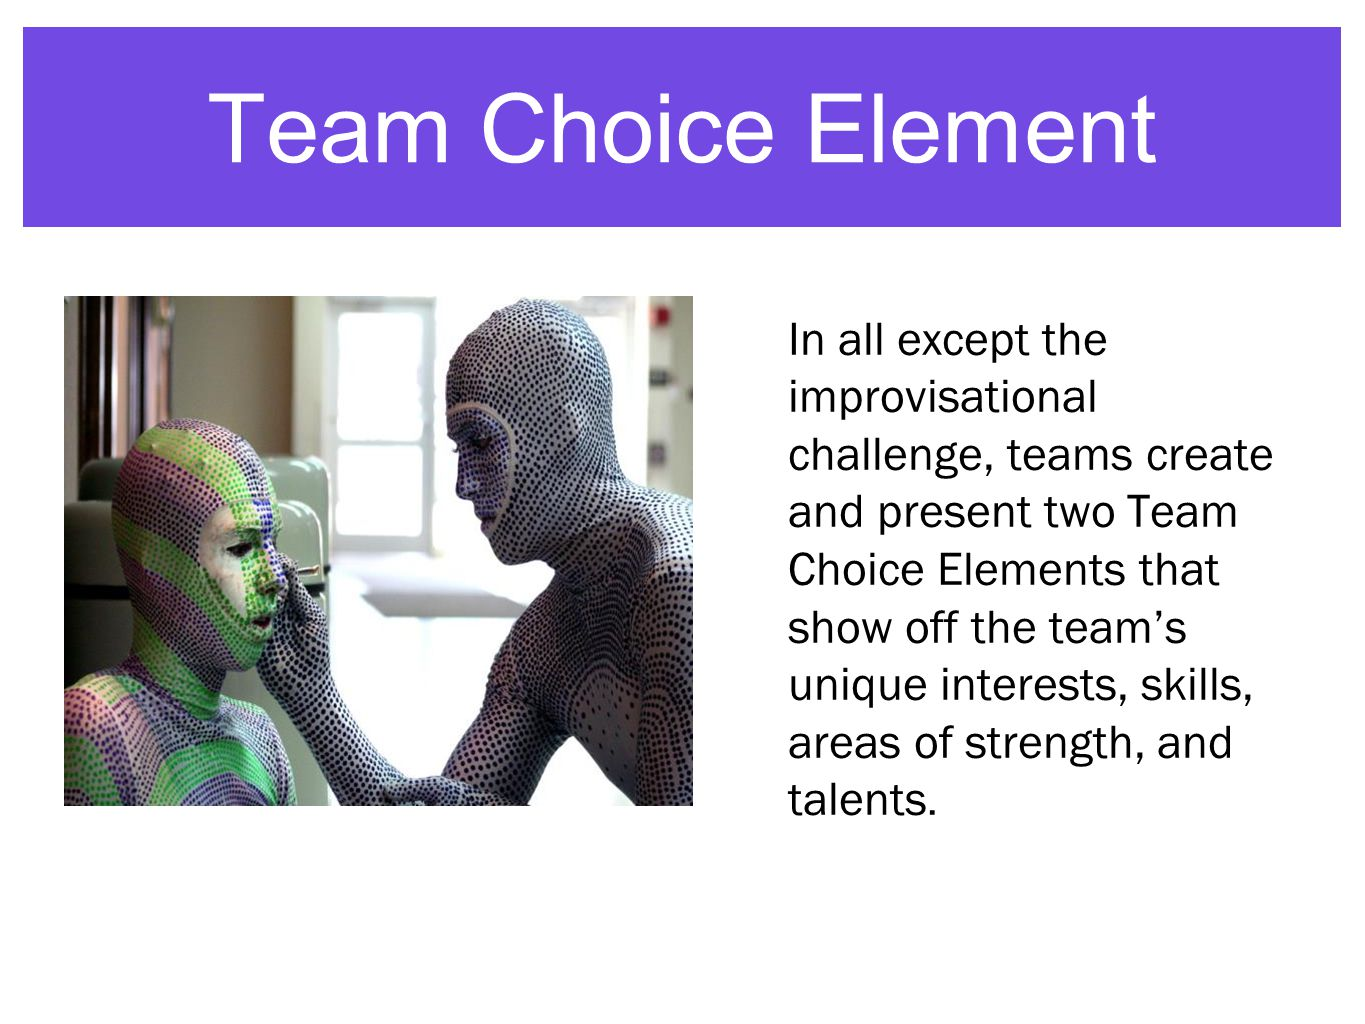 Team Choice Element In all except the improvisational challenge, teams create and present two Team Choice Elements that show off the team's unique interests, skills, areas of strength, and talents.